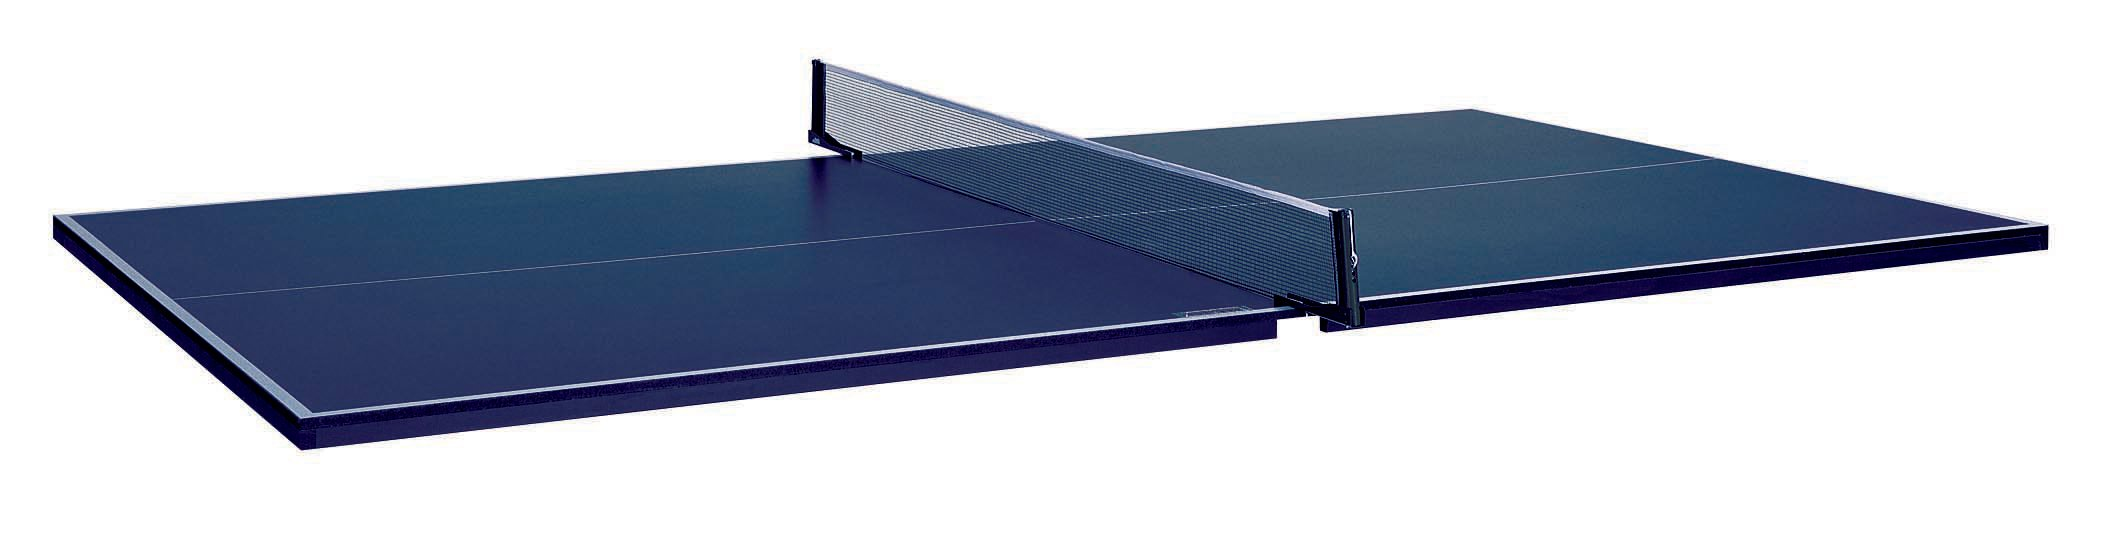 Martin Kilpatrick Pool Conversion Table Top with 2 Player Racket Set, 3 Year Warranty, Net Set, Foam Pads, Protection Rails